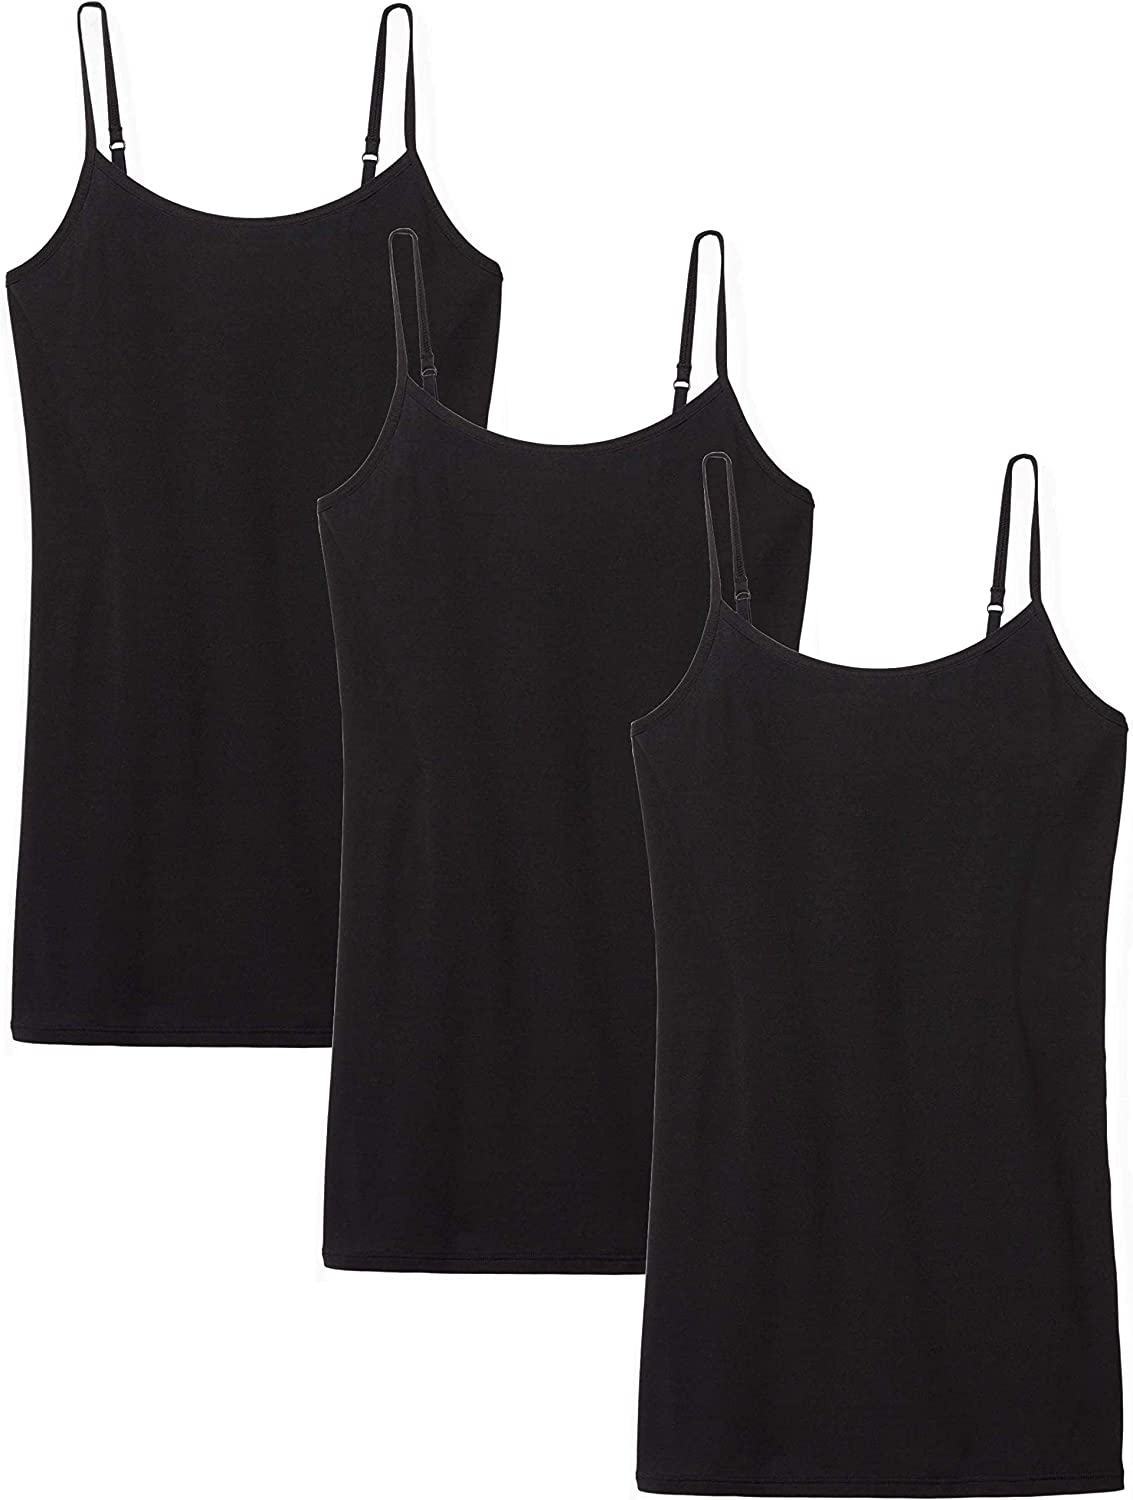 Tommy John Women's Second Skin Camisole - 3 Pack - Stay Tucked Design - Adjustable Lightweight Spaghetti Strap Tank Tops